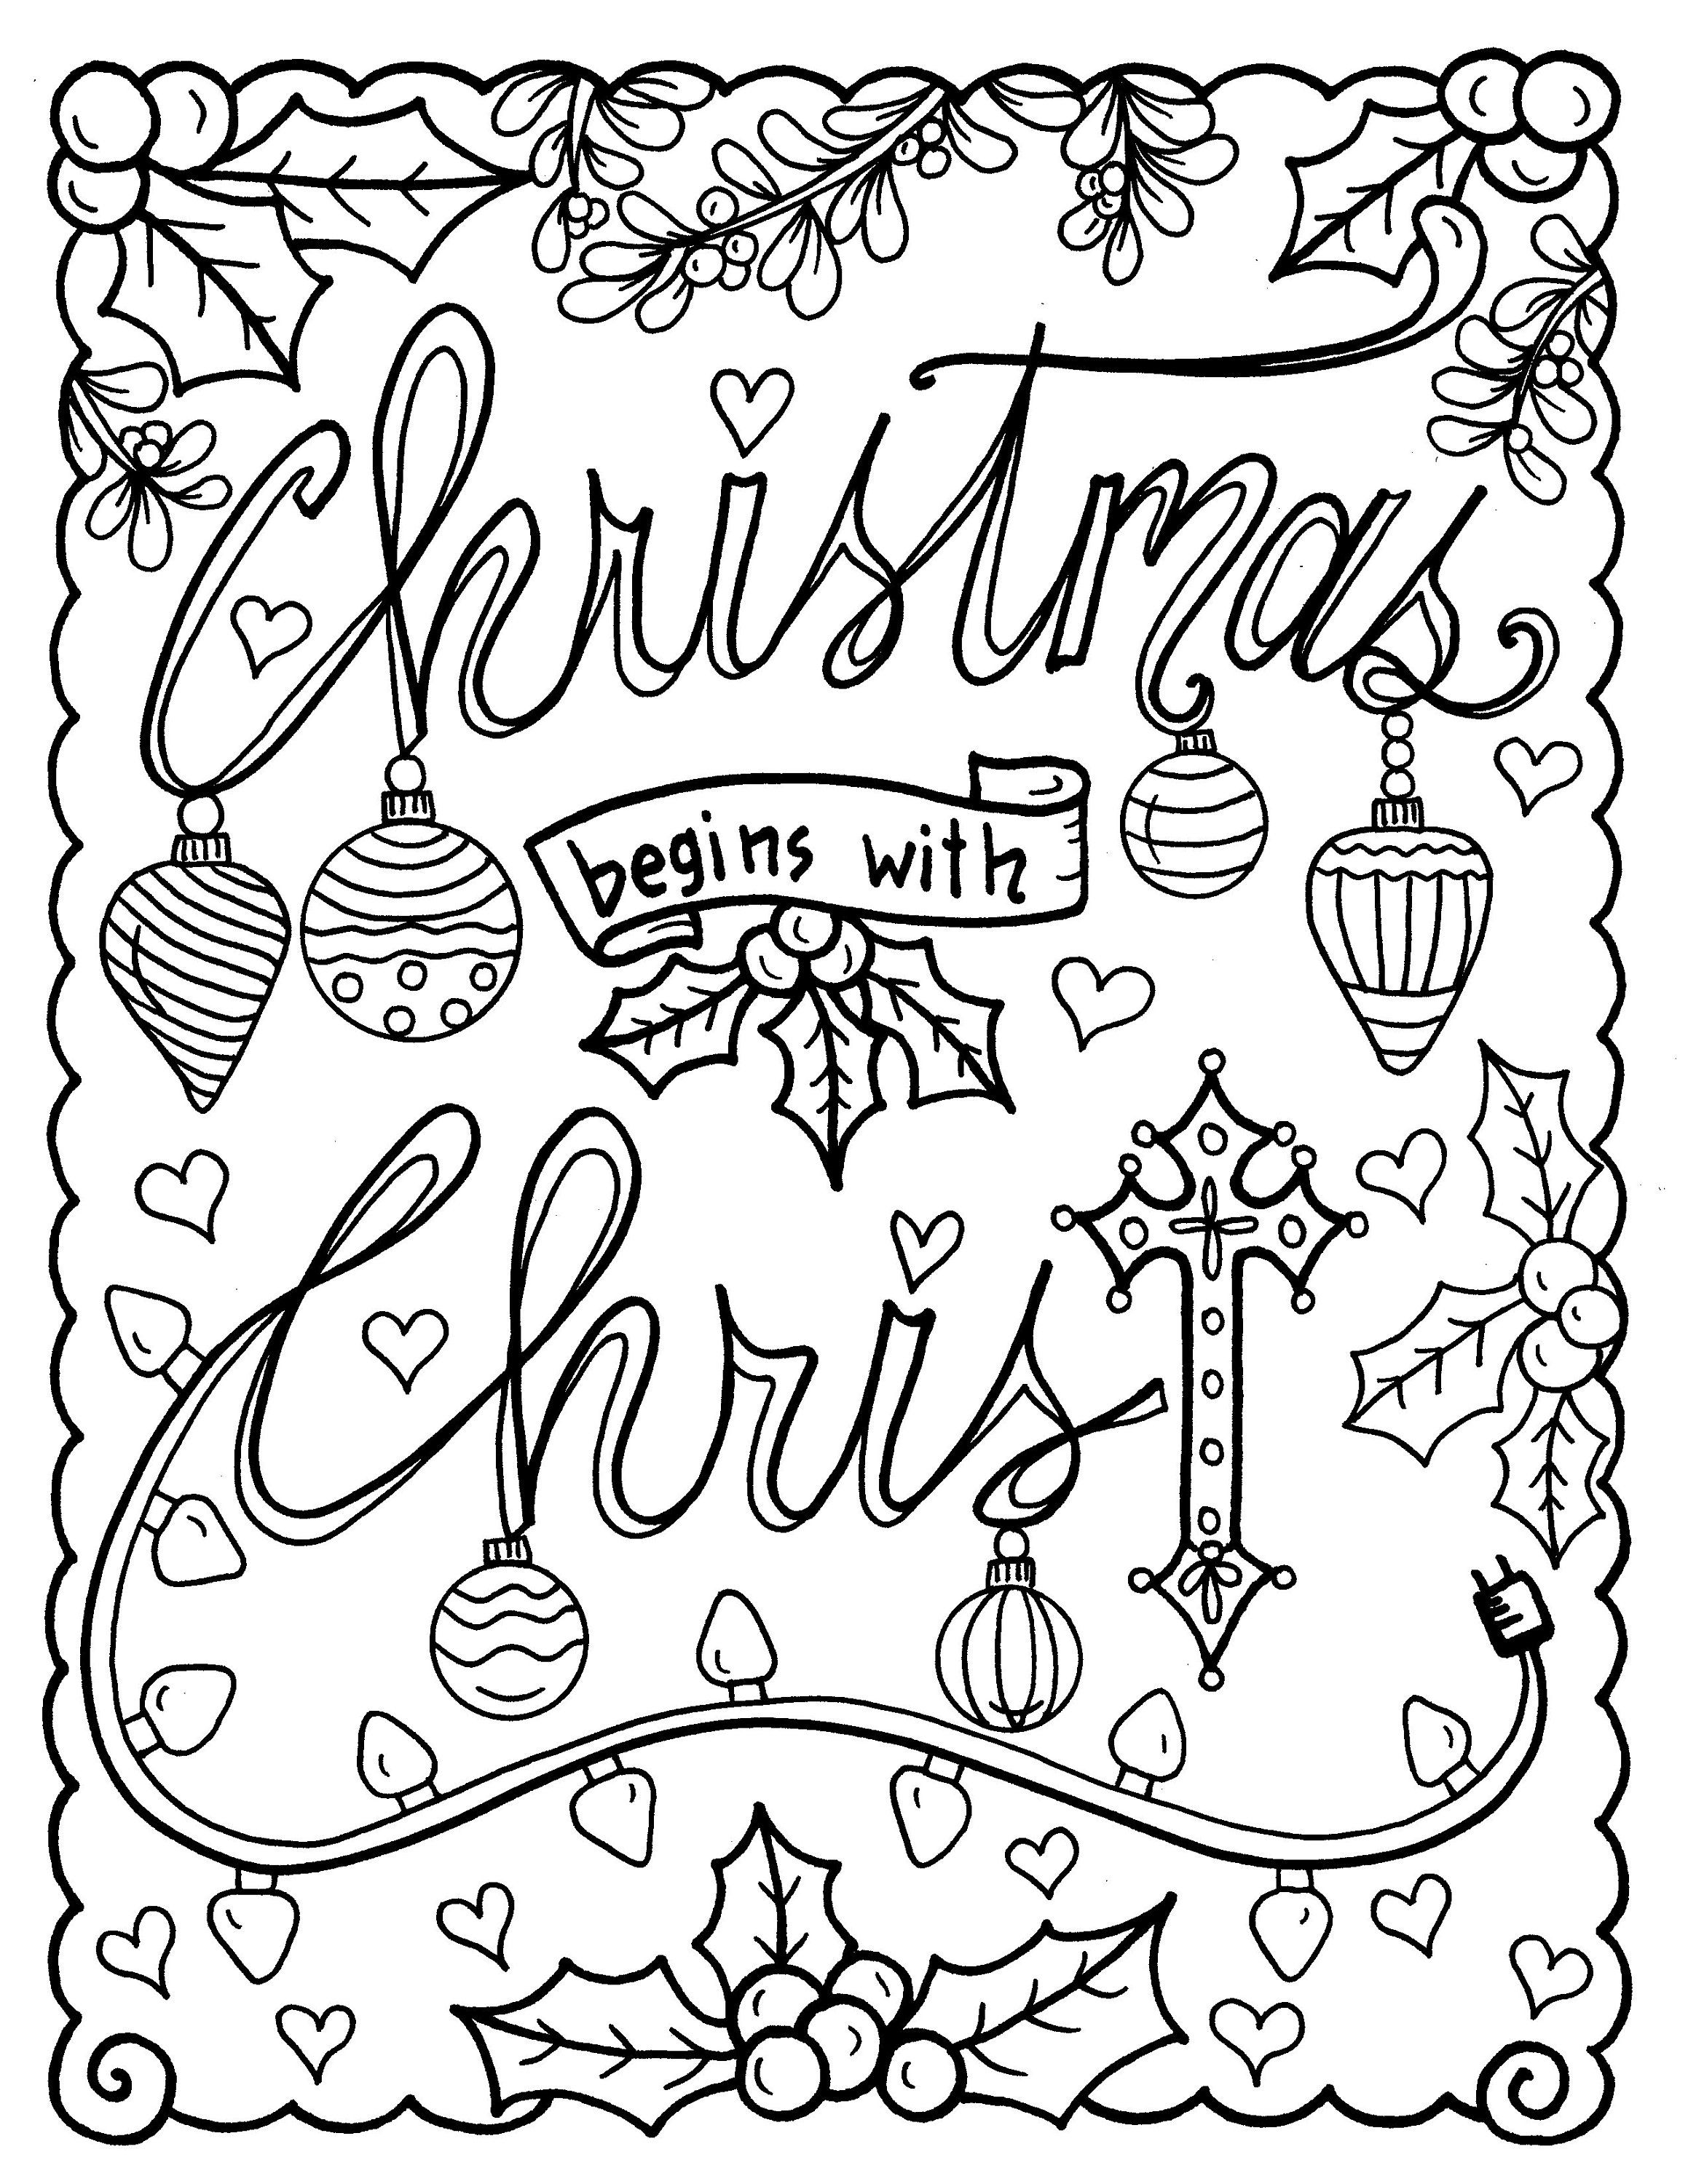 free christian christmas coloring pages printable christian christmas coloring page coloring home christian free christmas pages coloring printable